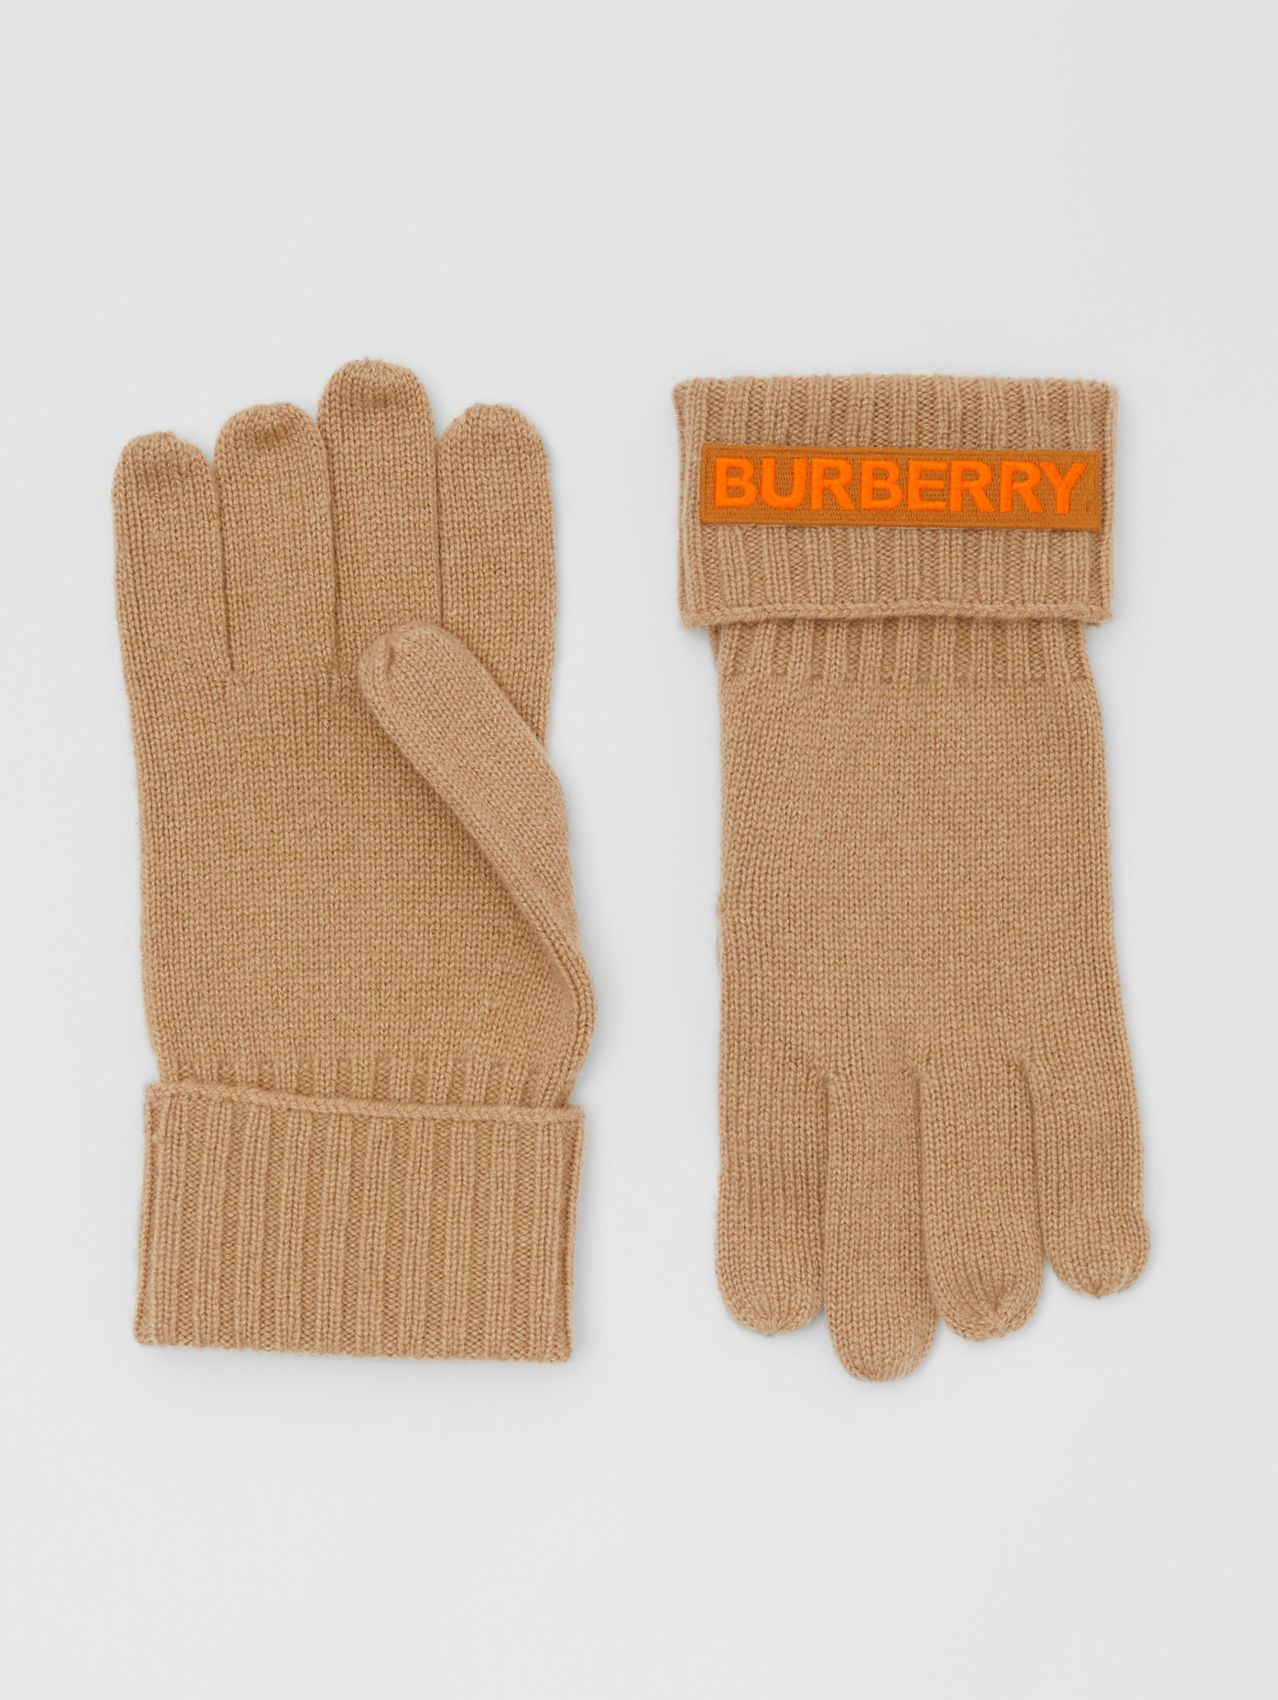 Kingdom and Logo Appliqué Cashmere Gloves in Archive Beige